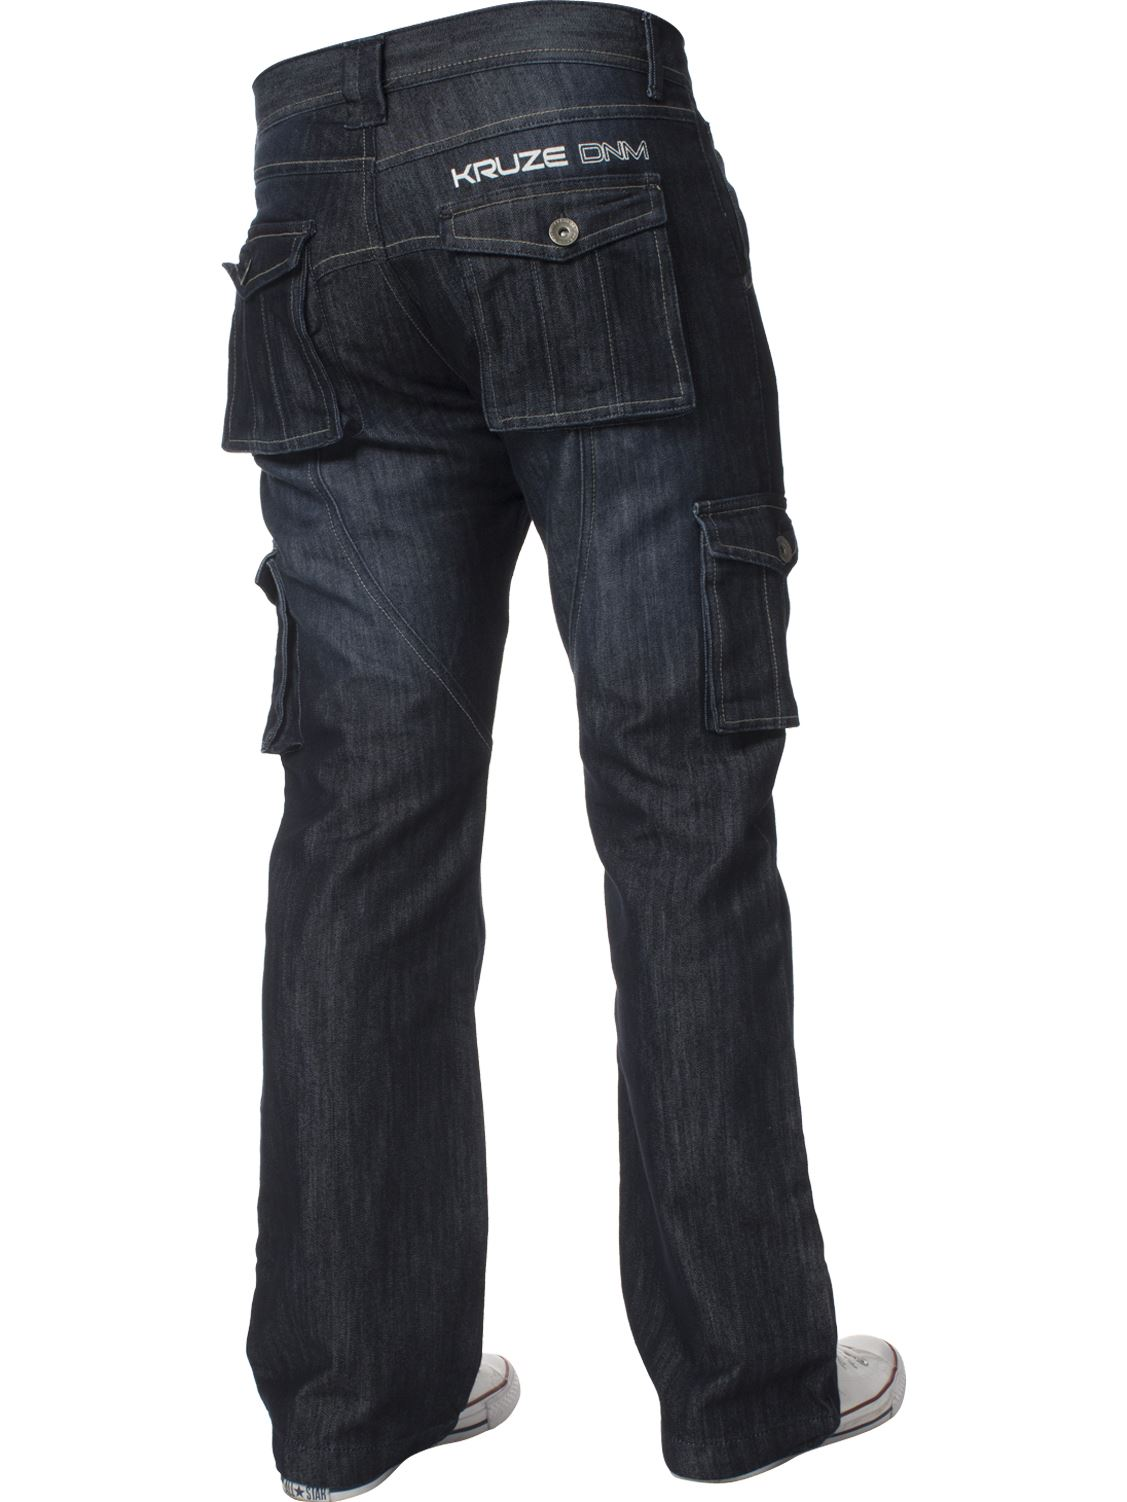 Mens-Cargo-Combat-Trousers-Jeans-Heavy-Duty-Work-Casual-Pants-Big-Tall-All-Sizes thumbnail 5